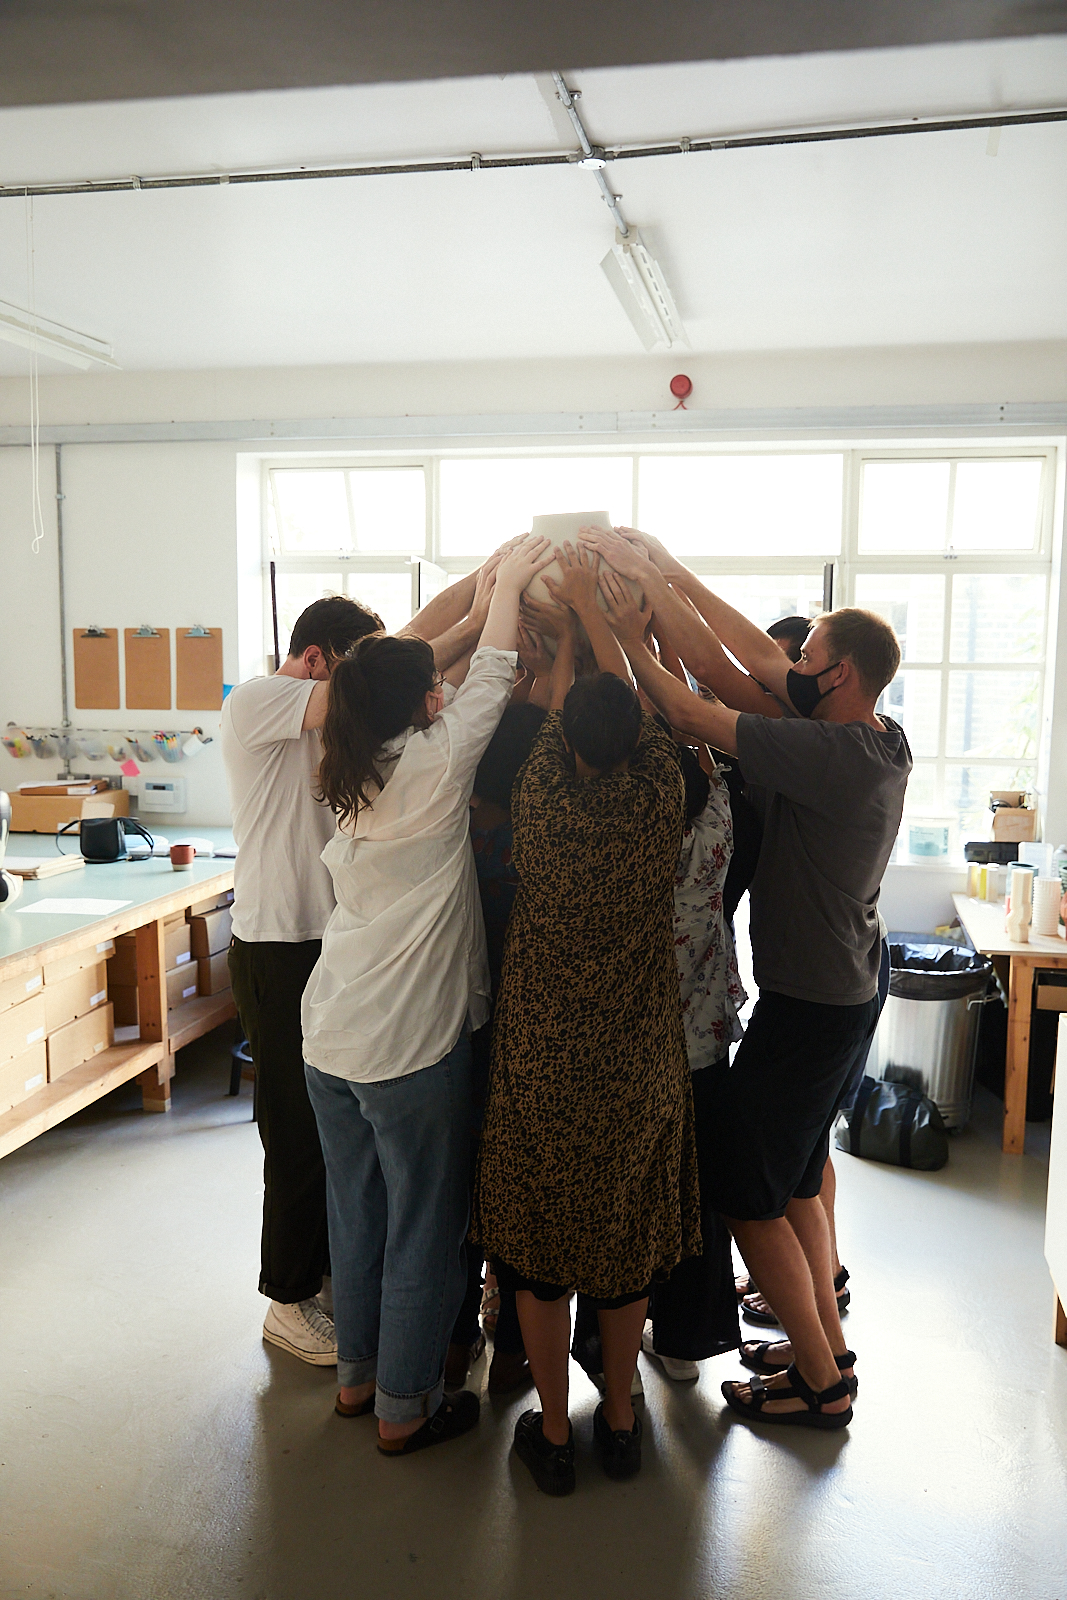 Rehearsing making a Hold Me vase in the studio